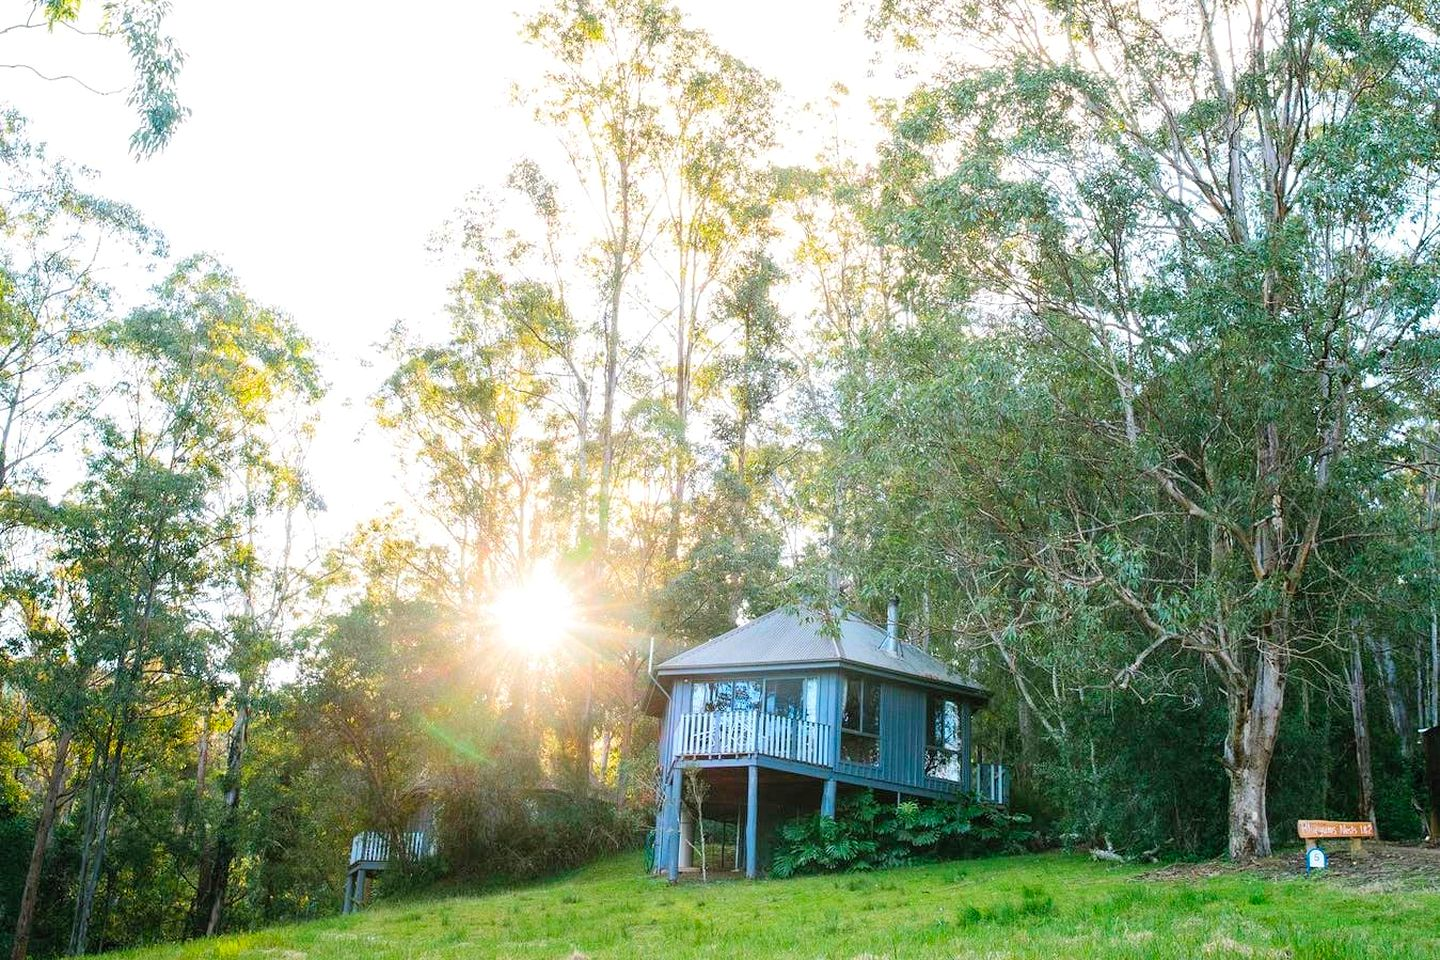 Barrington Tops accommodation that's ideal for romantic getaways in NSW